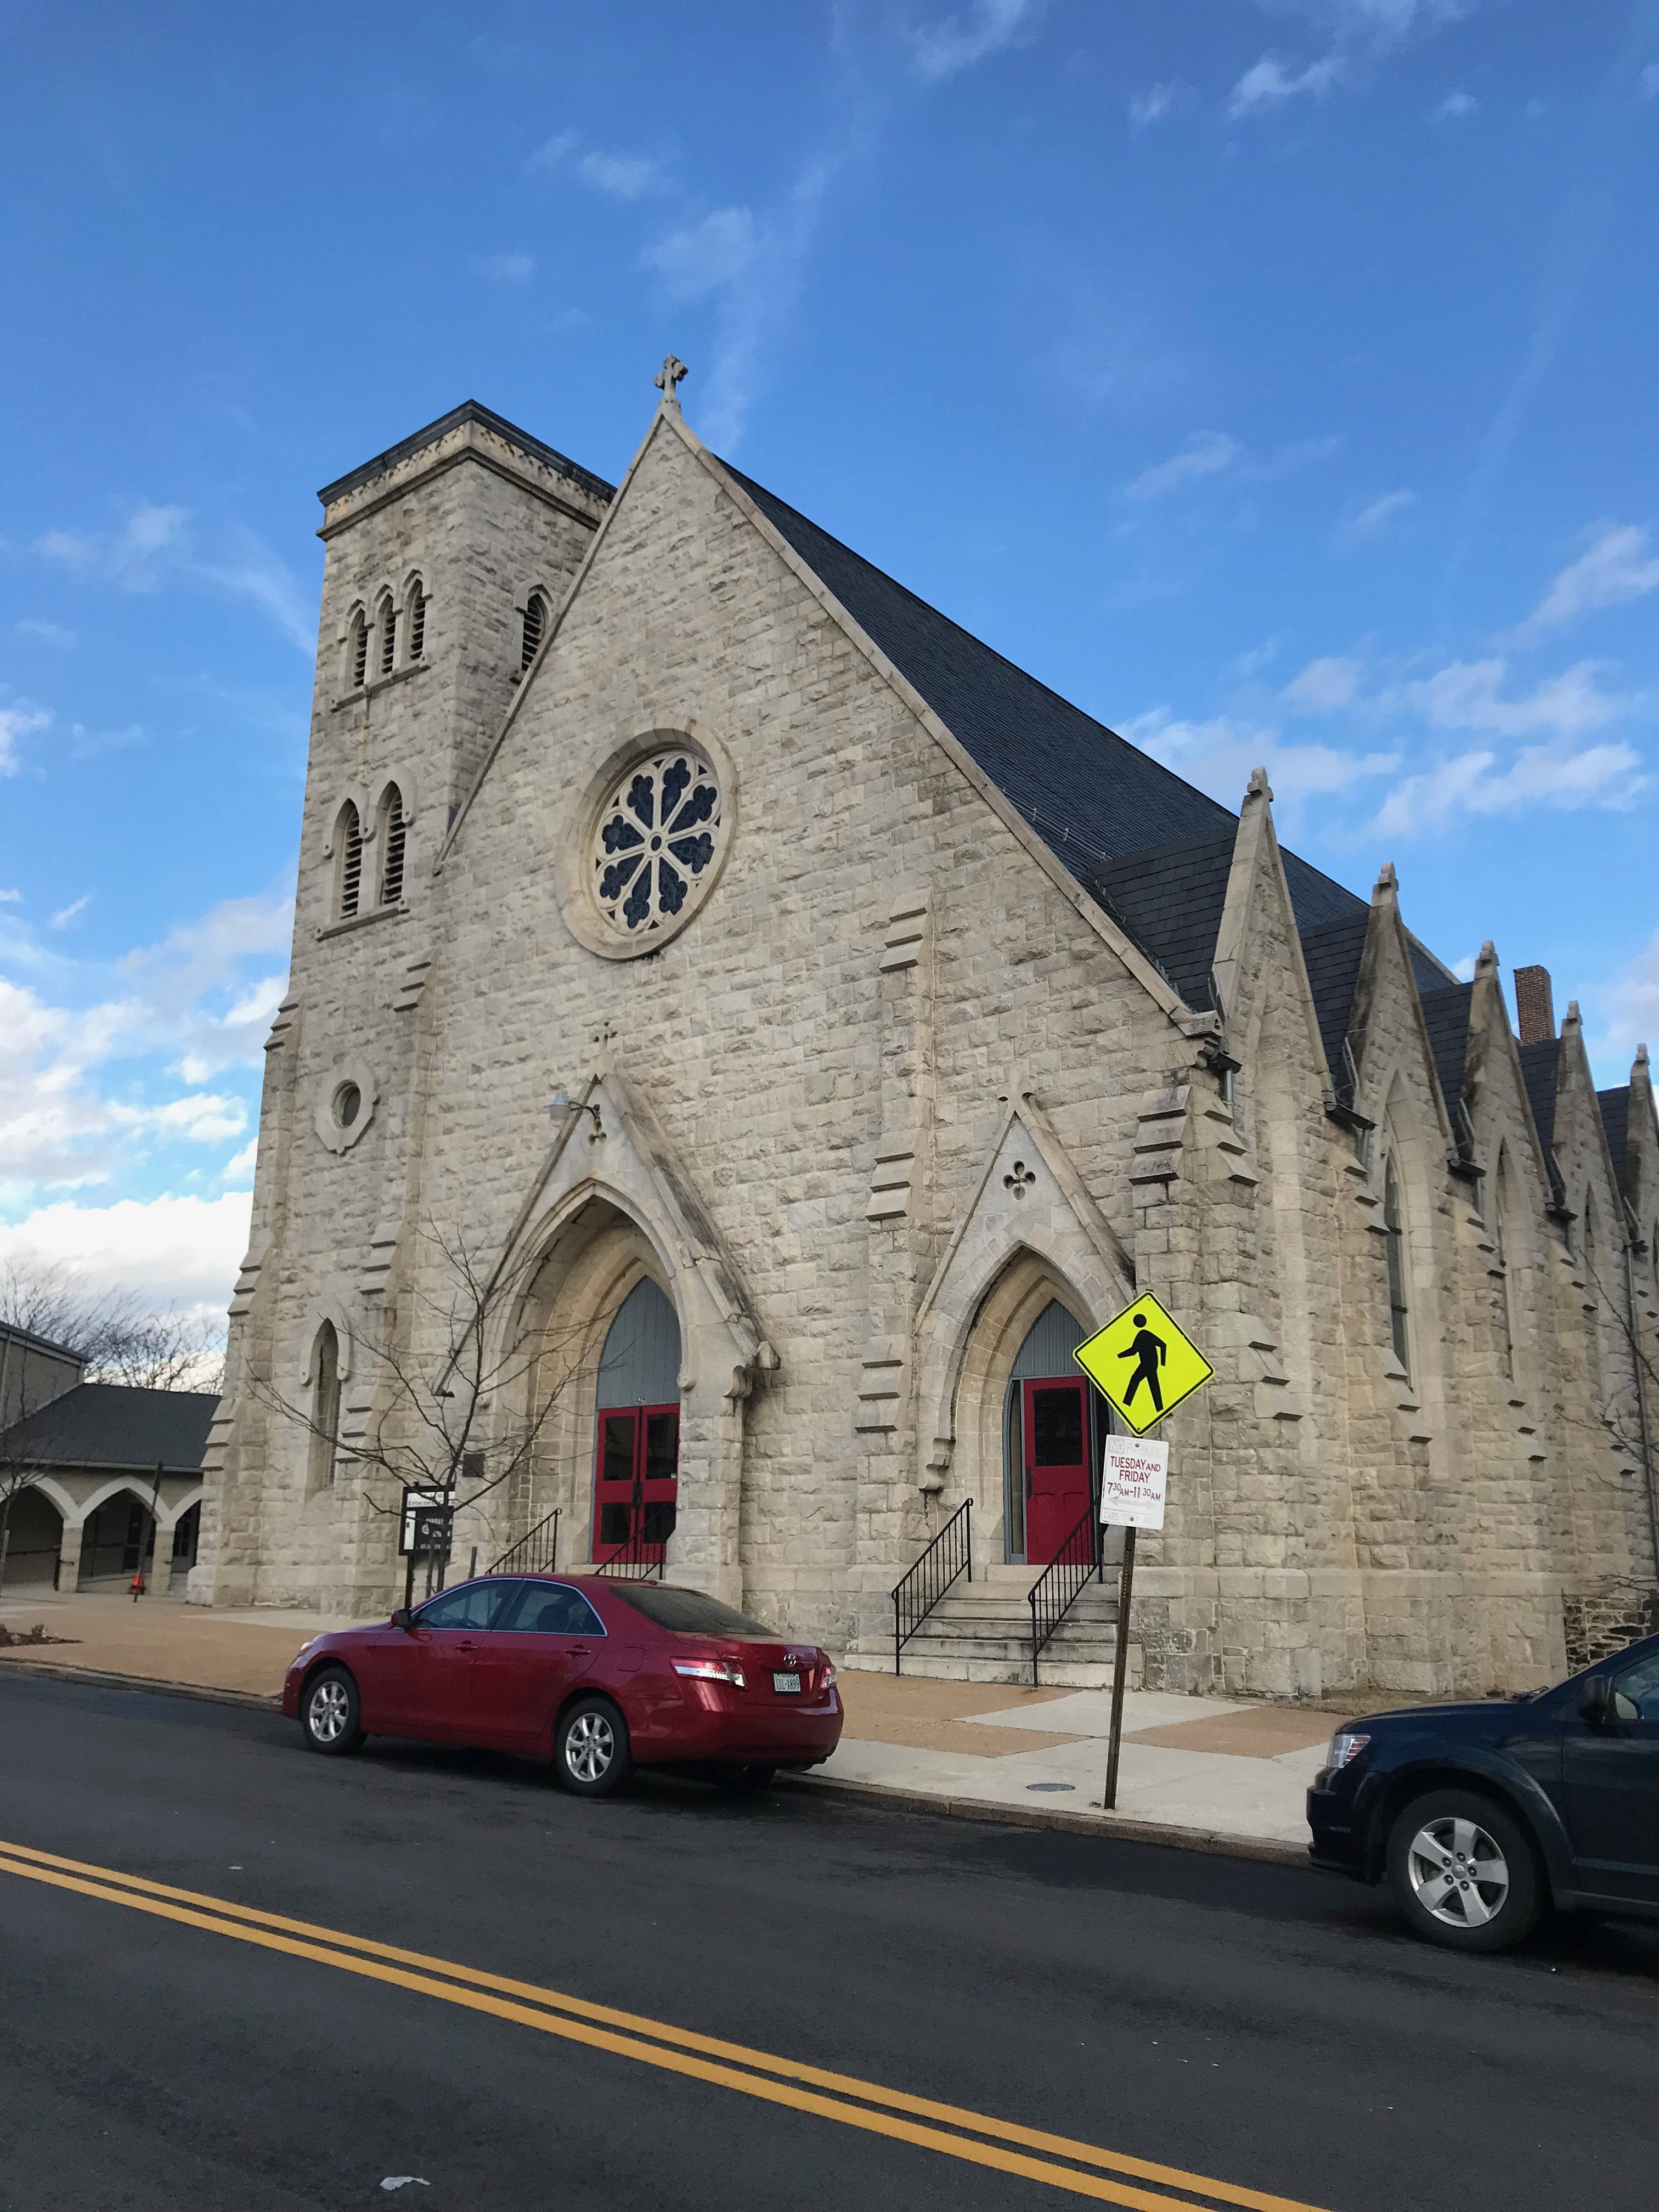 St. James' Episcopal Church/Former Episcopal Church of the Ascension (1867; Hutton & Murdoch, architects), 1020 West W. Avenue, Baltimore, MD 21217, Architecture, Baltimore, Building, Car, HQ Photo